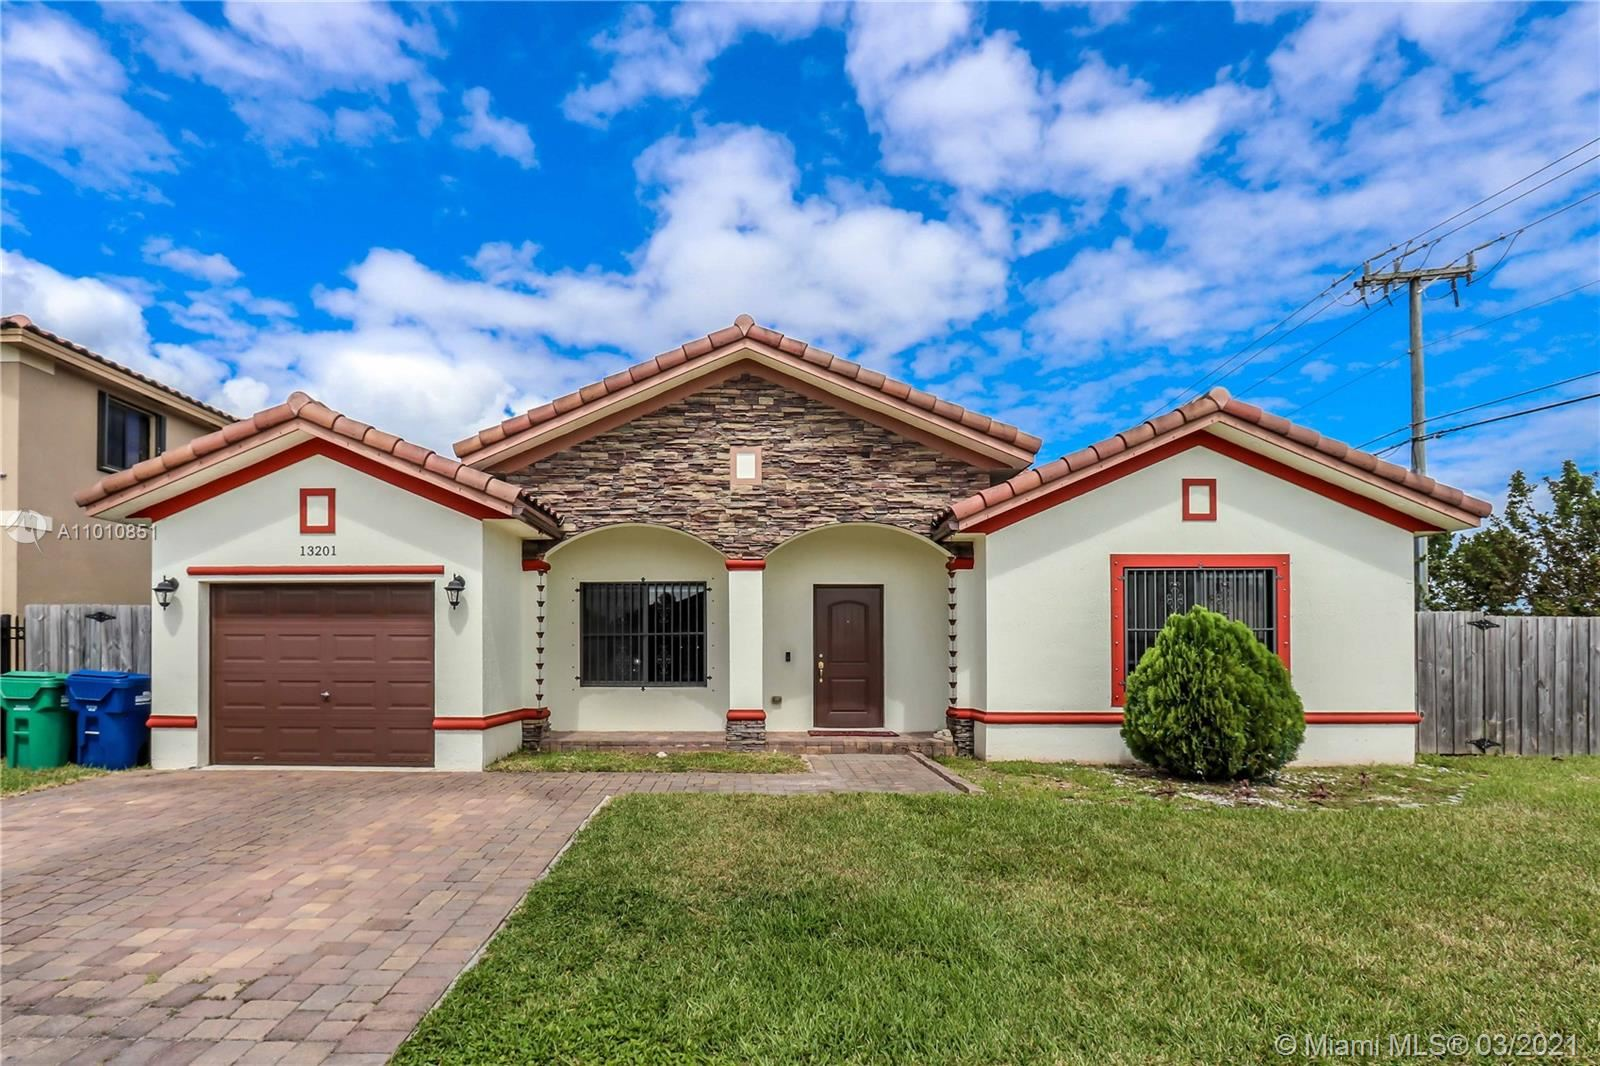 13201 SW 274th Ter, Homestead, FL 33032 - #: A11010851